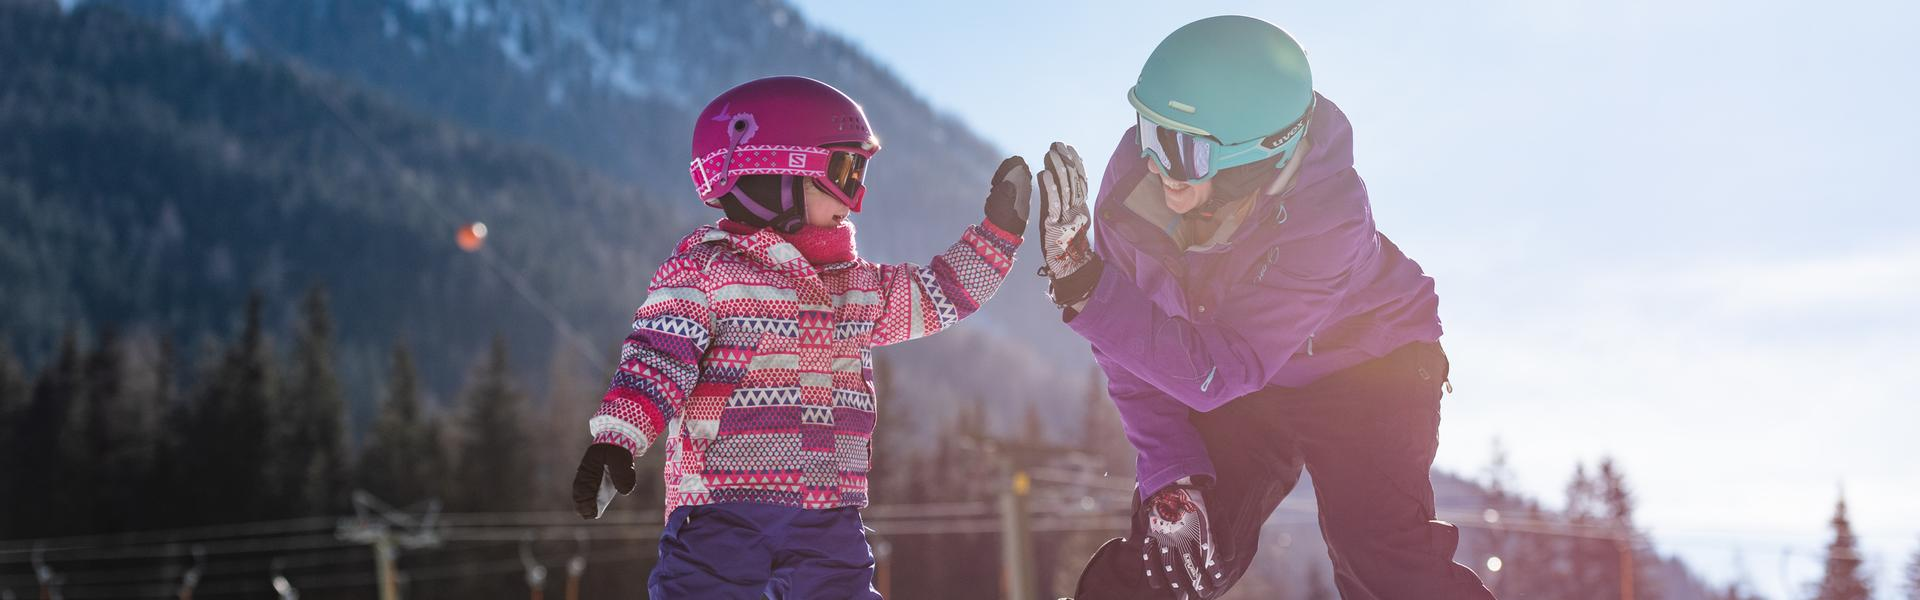 Children's ski course at the Köfelelift